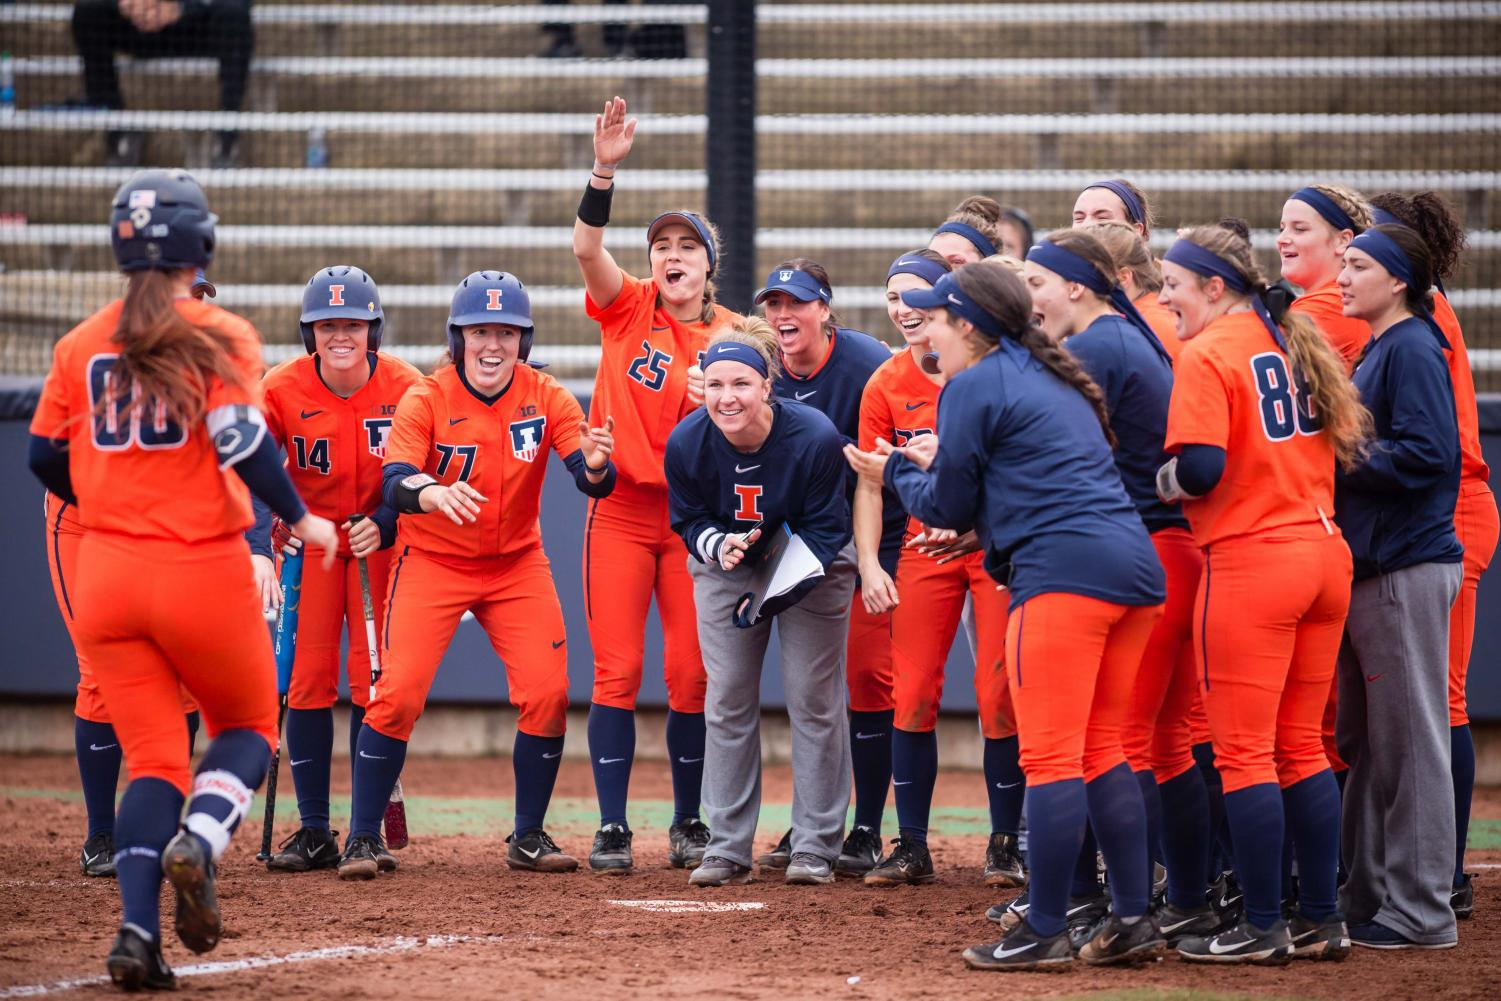 The Illini softball team celebrates at home plate after outfielder Veronica Ruelius (00) hit a home run during the game against Northwestern at Eichelberger Field on Wednesday, Mar. 28, 2018.